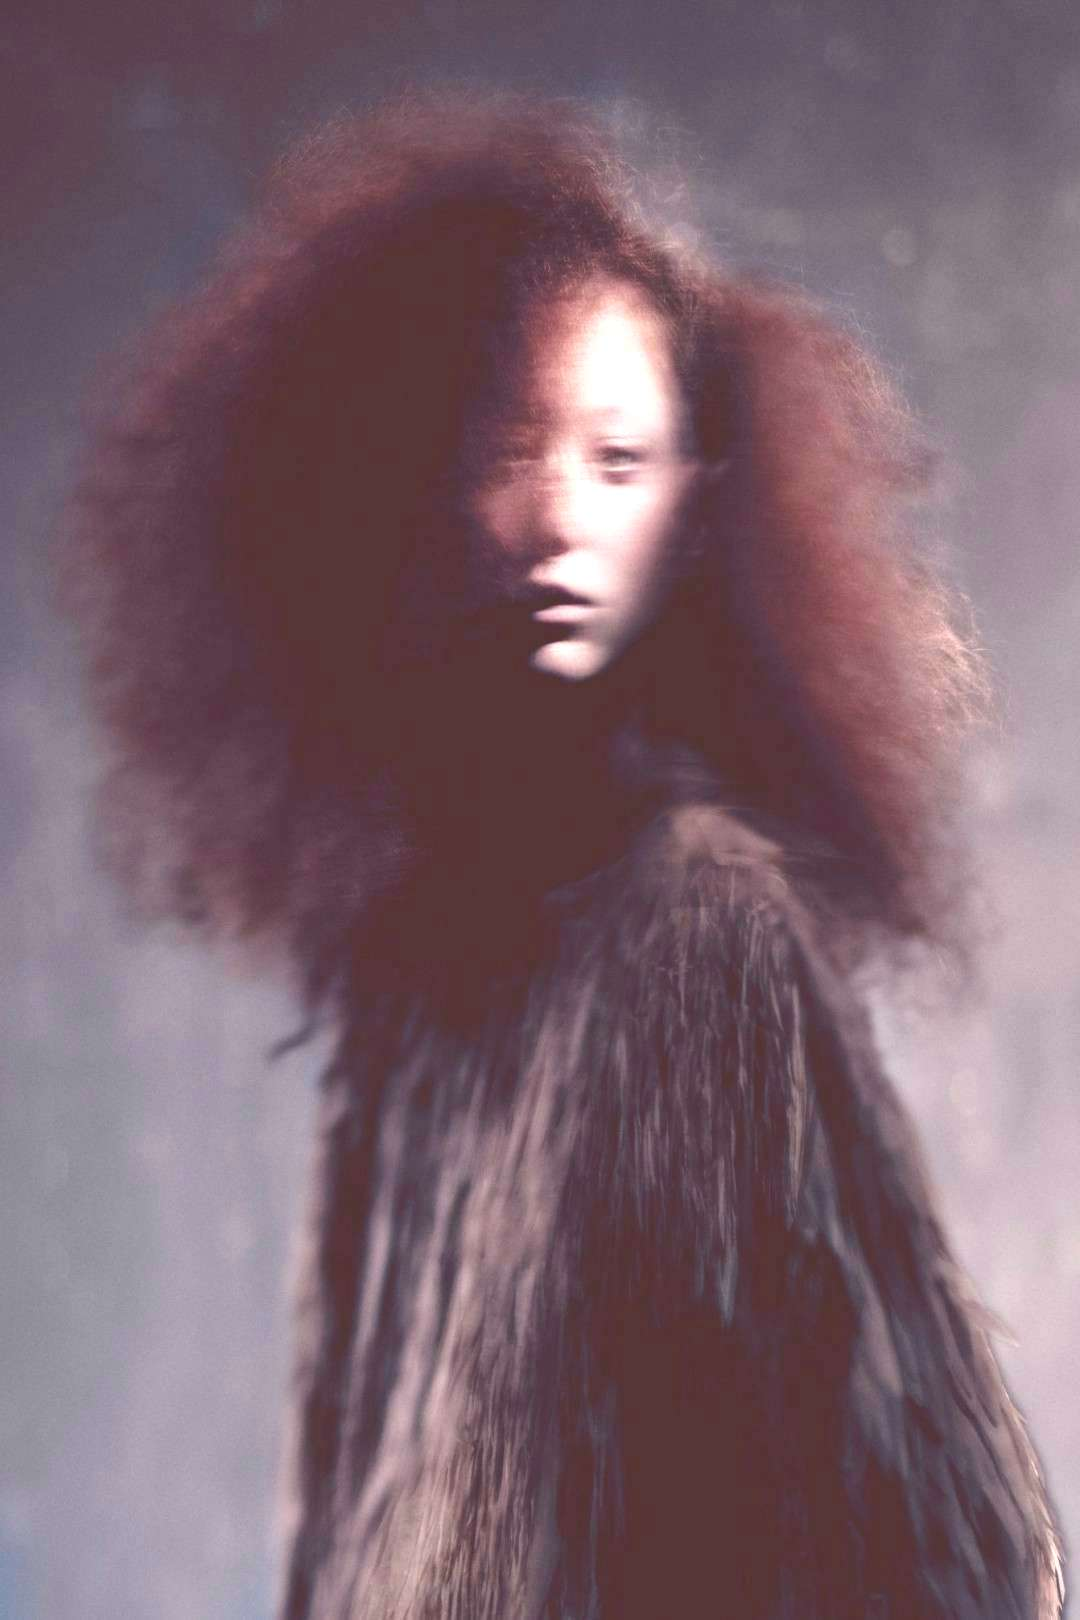 Art + Commerce - Artists - Photographers - Paolo Roversi - WomenYou can find Paolo roversi and more